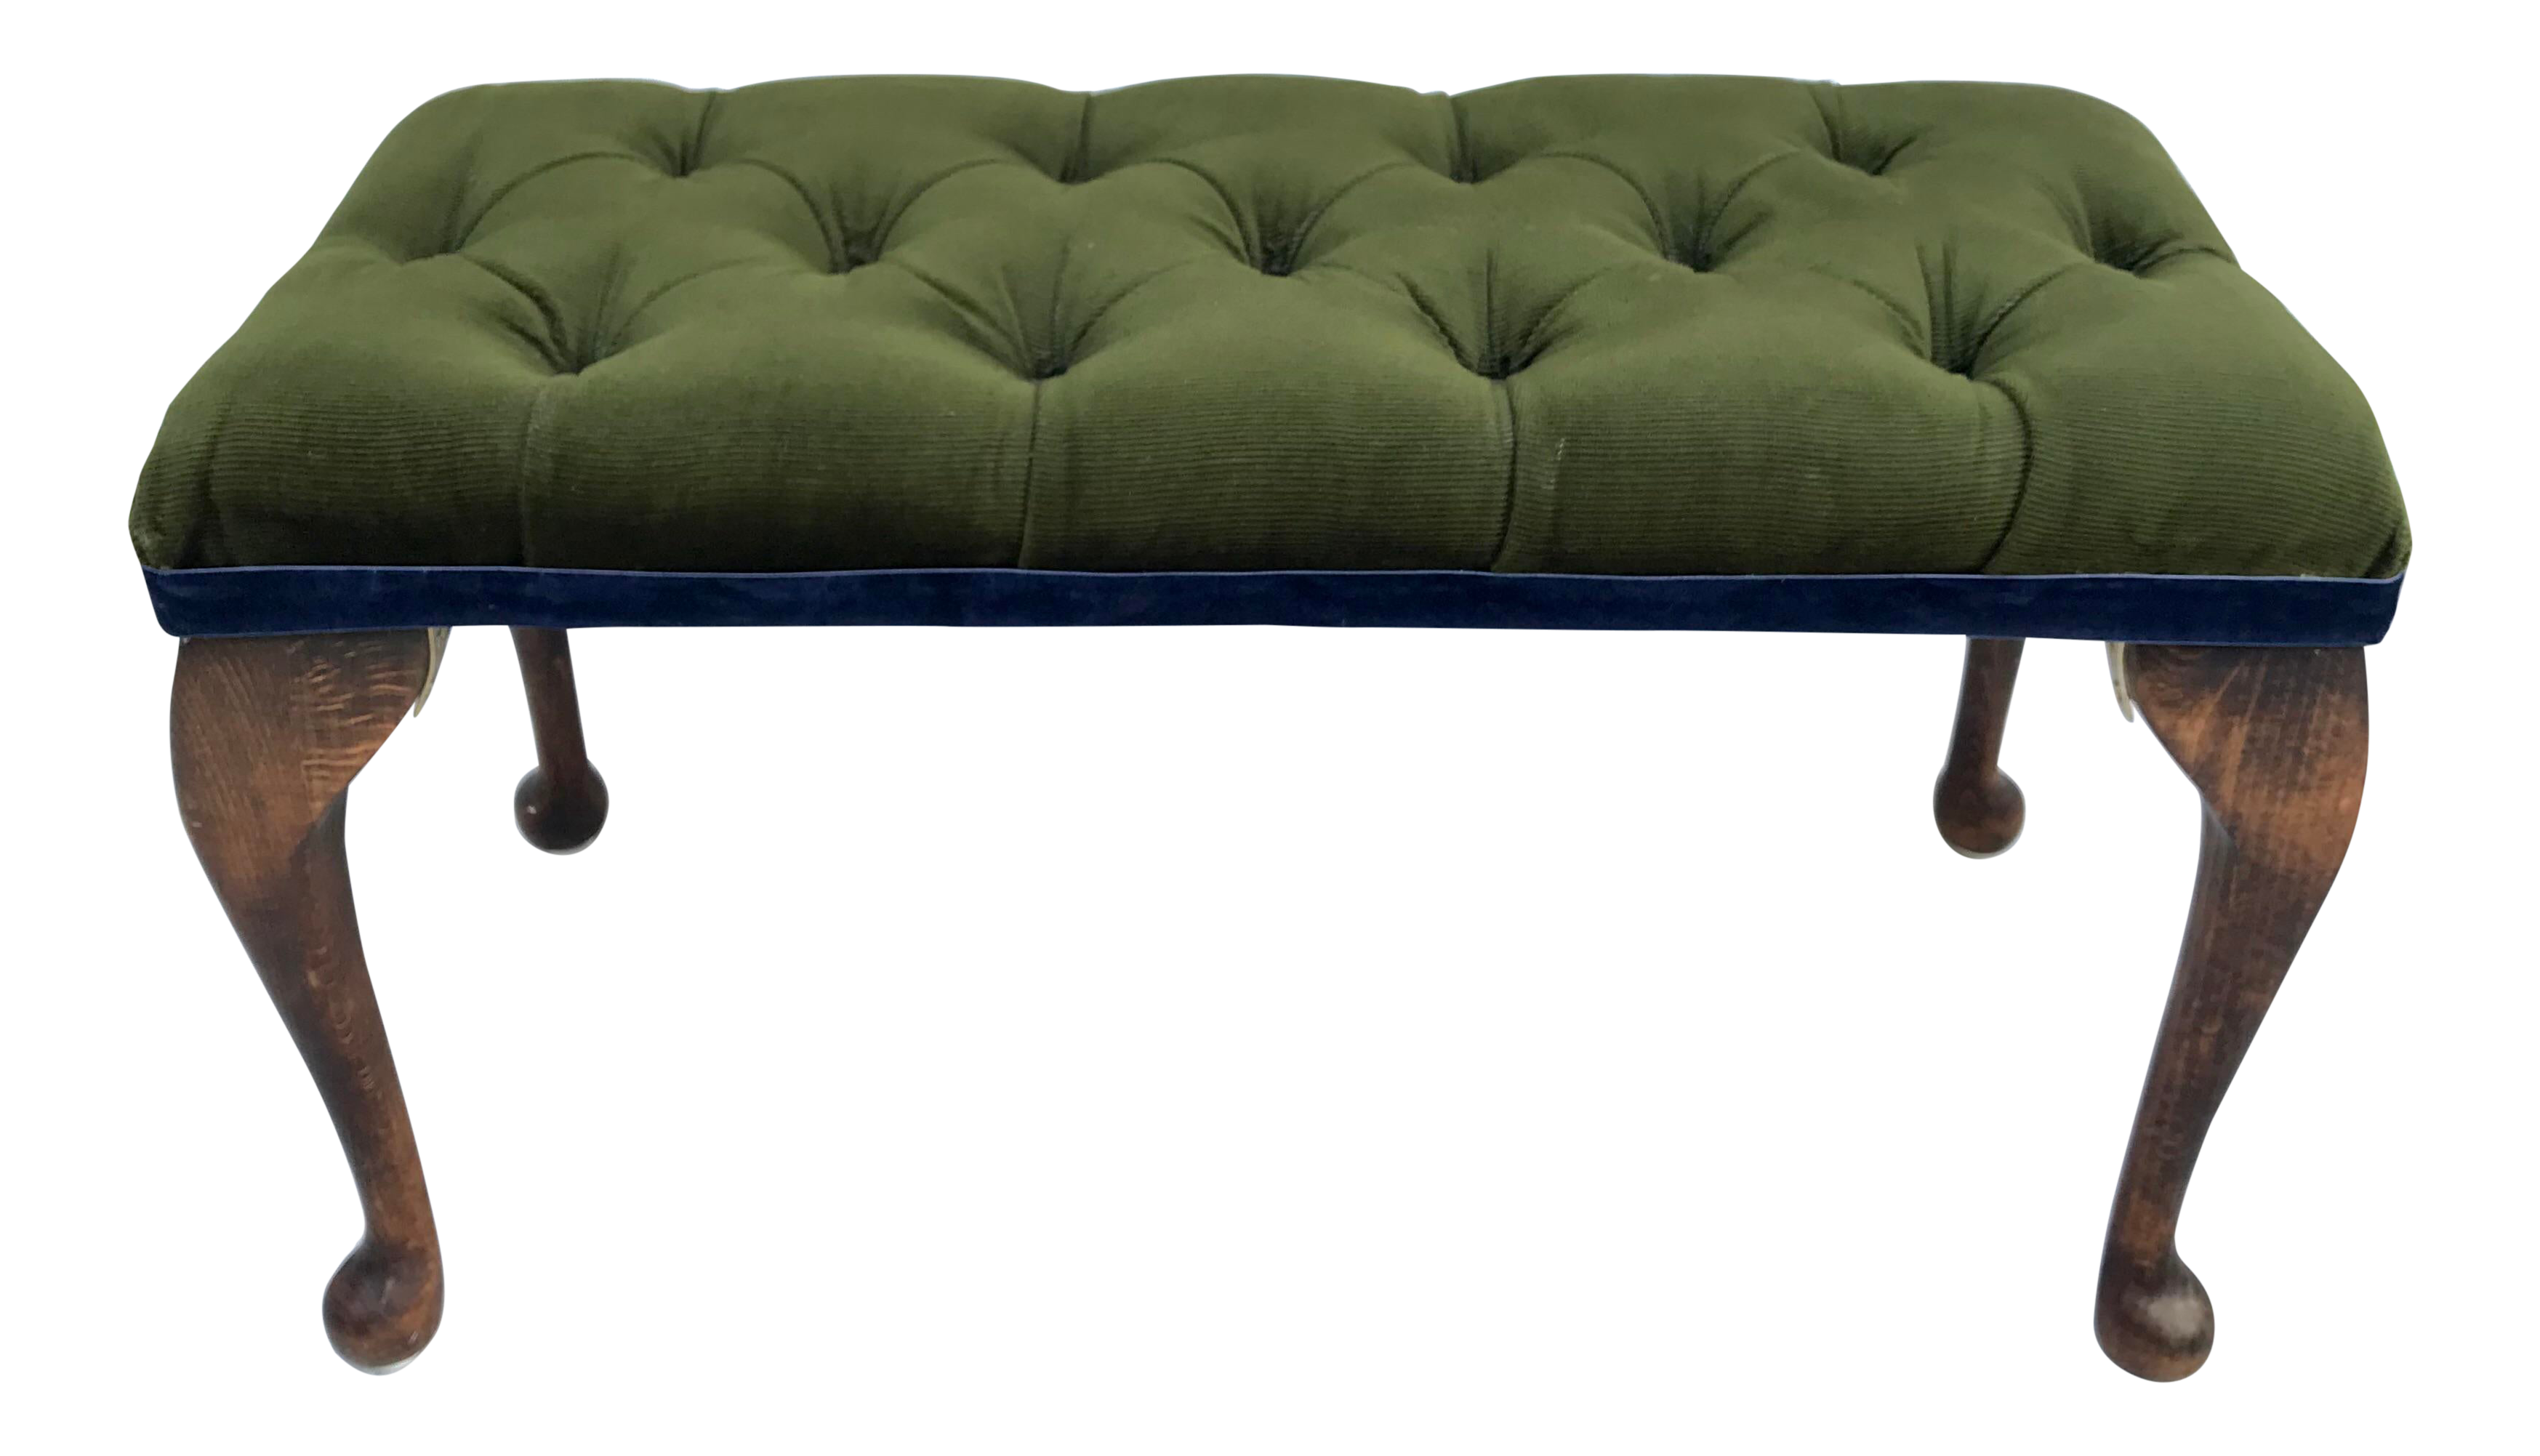 Outstanding Antique Green Tufted Petite Bench Andrewgaddart Wooden Chair Designs For Living Room Andrewgaddartcom